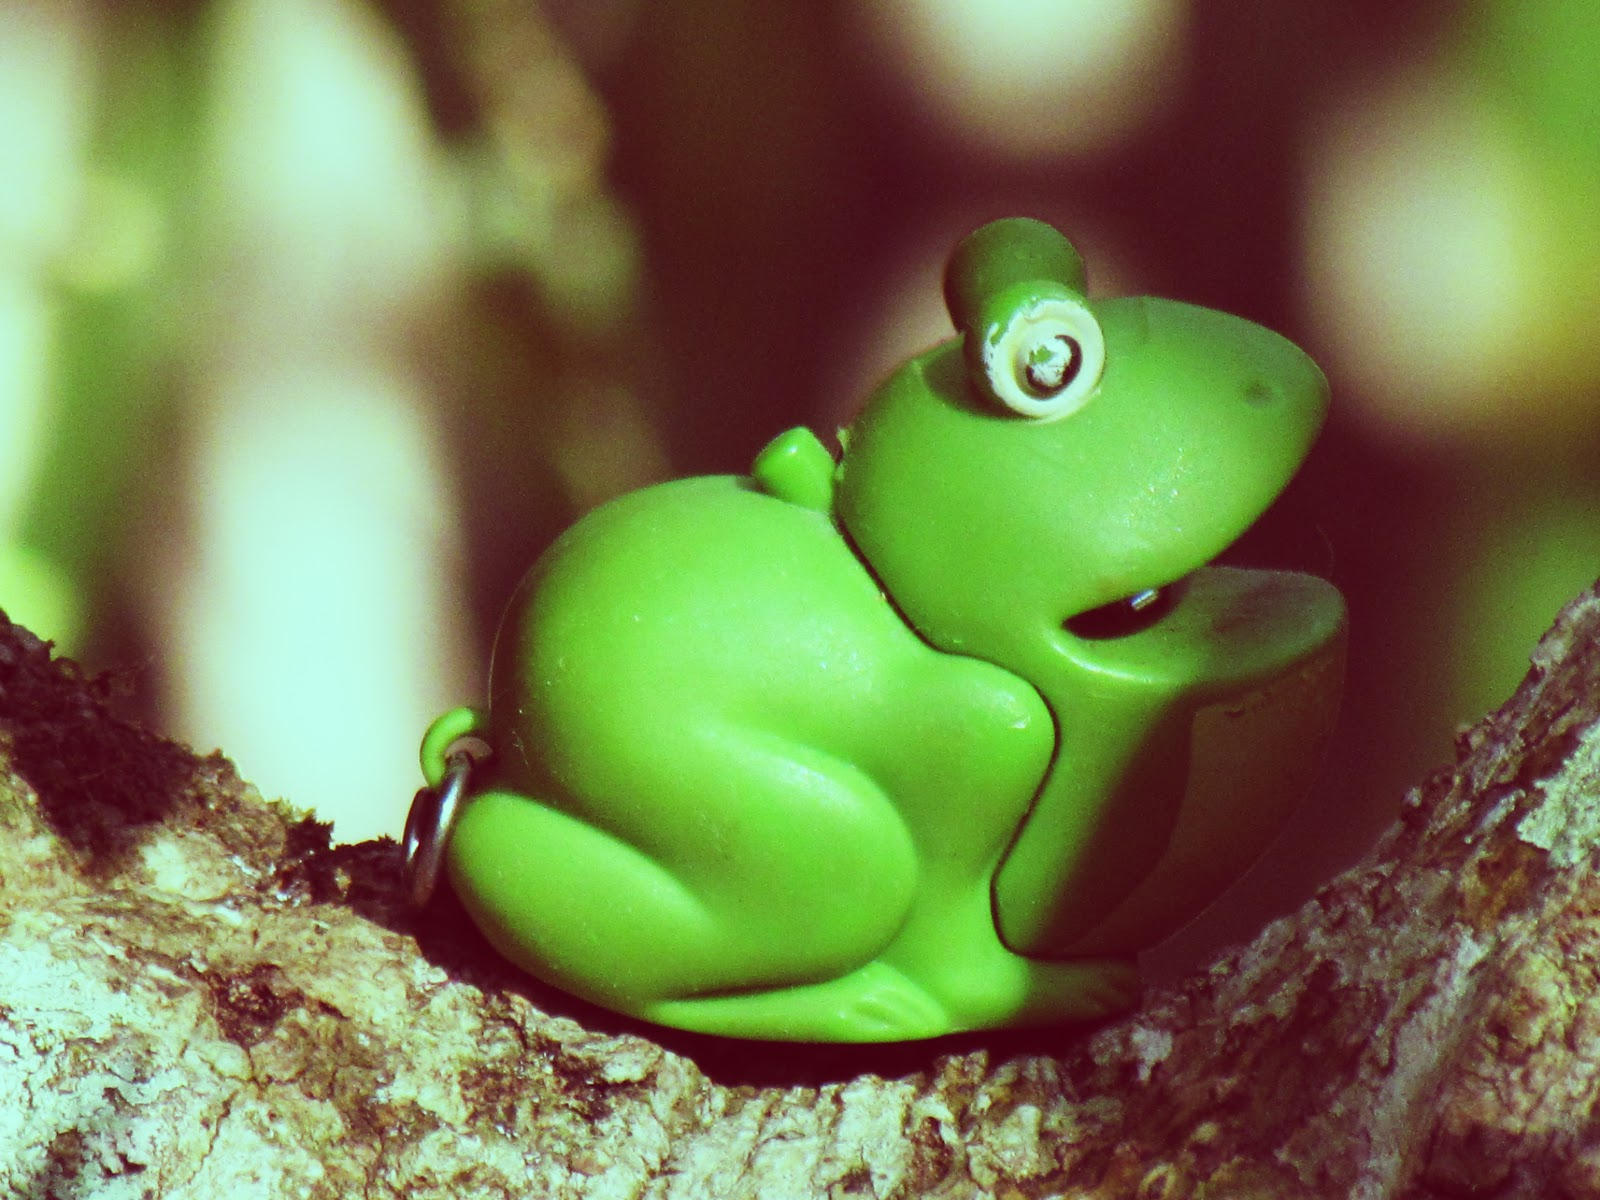 A toy frog flashlight nestled in the tree branches on fern trail in Hammock Park in Dunedin, Florida